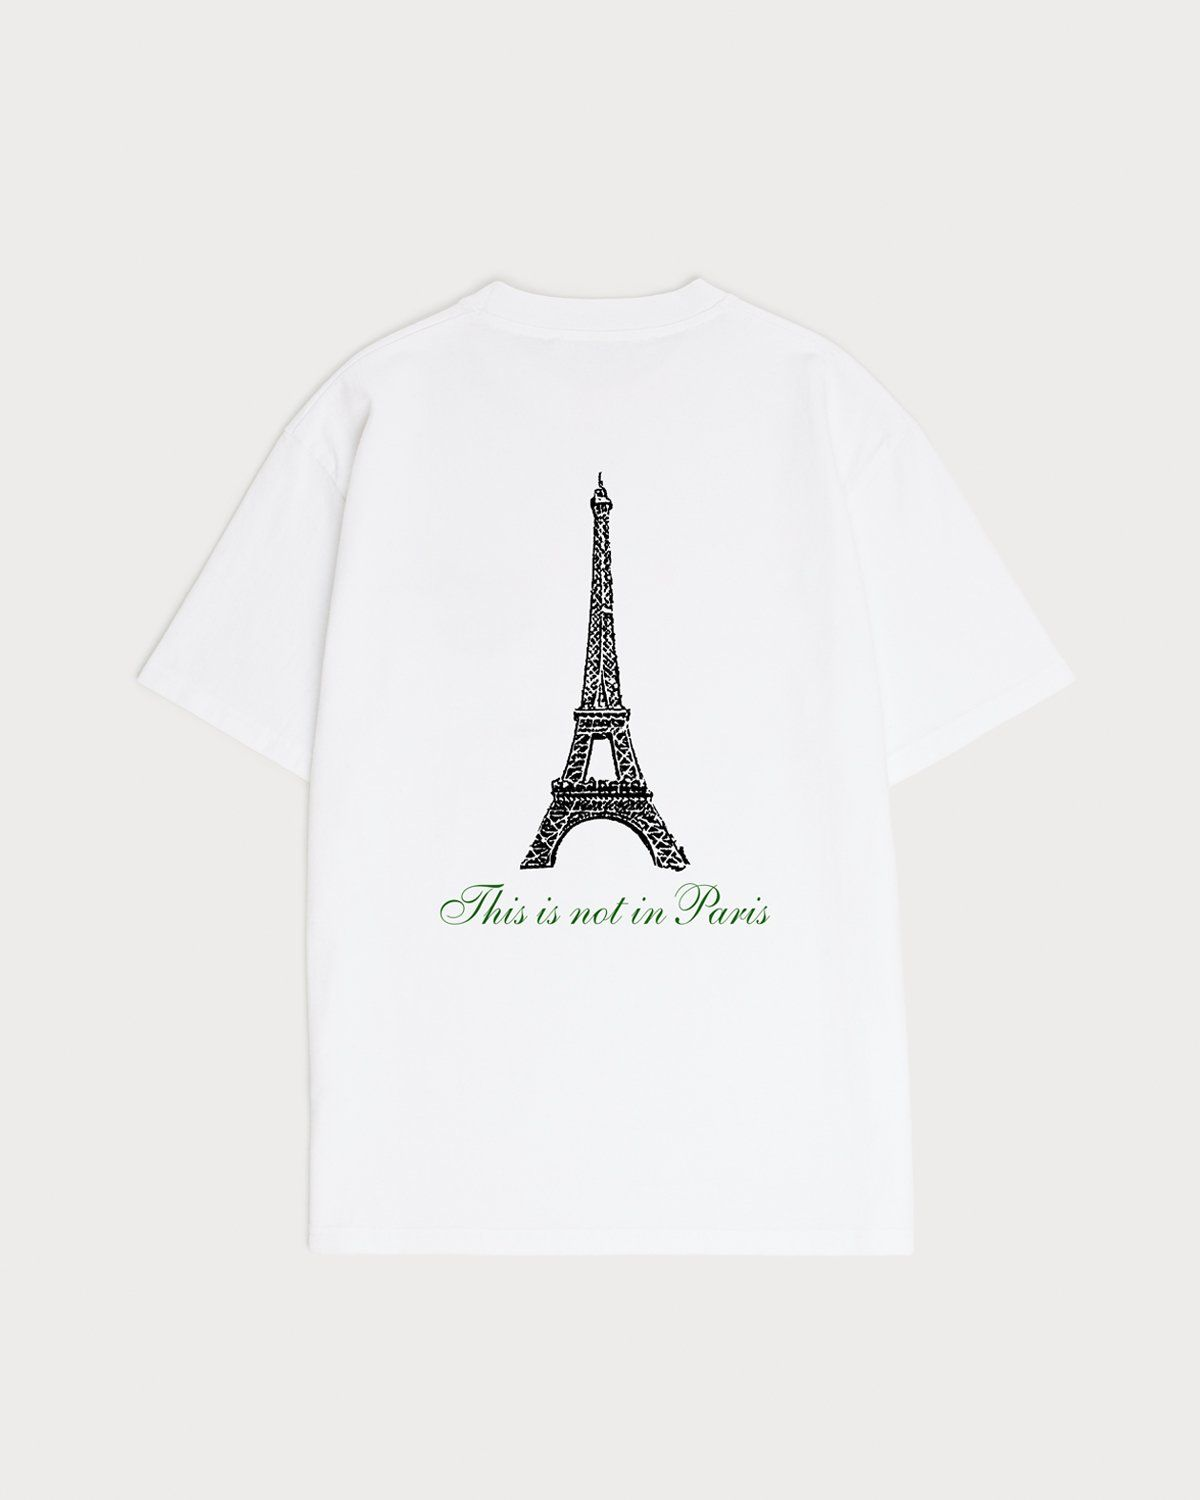 Not In Paris Presented By Highsnobiety - T-Shirt White - Image 2